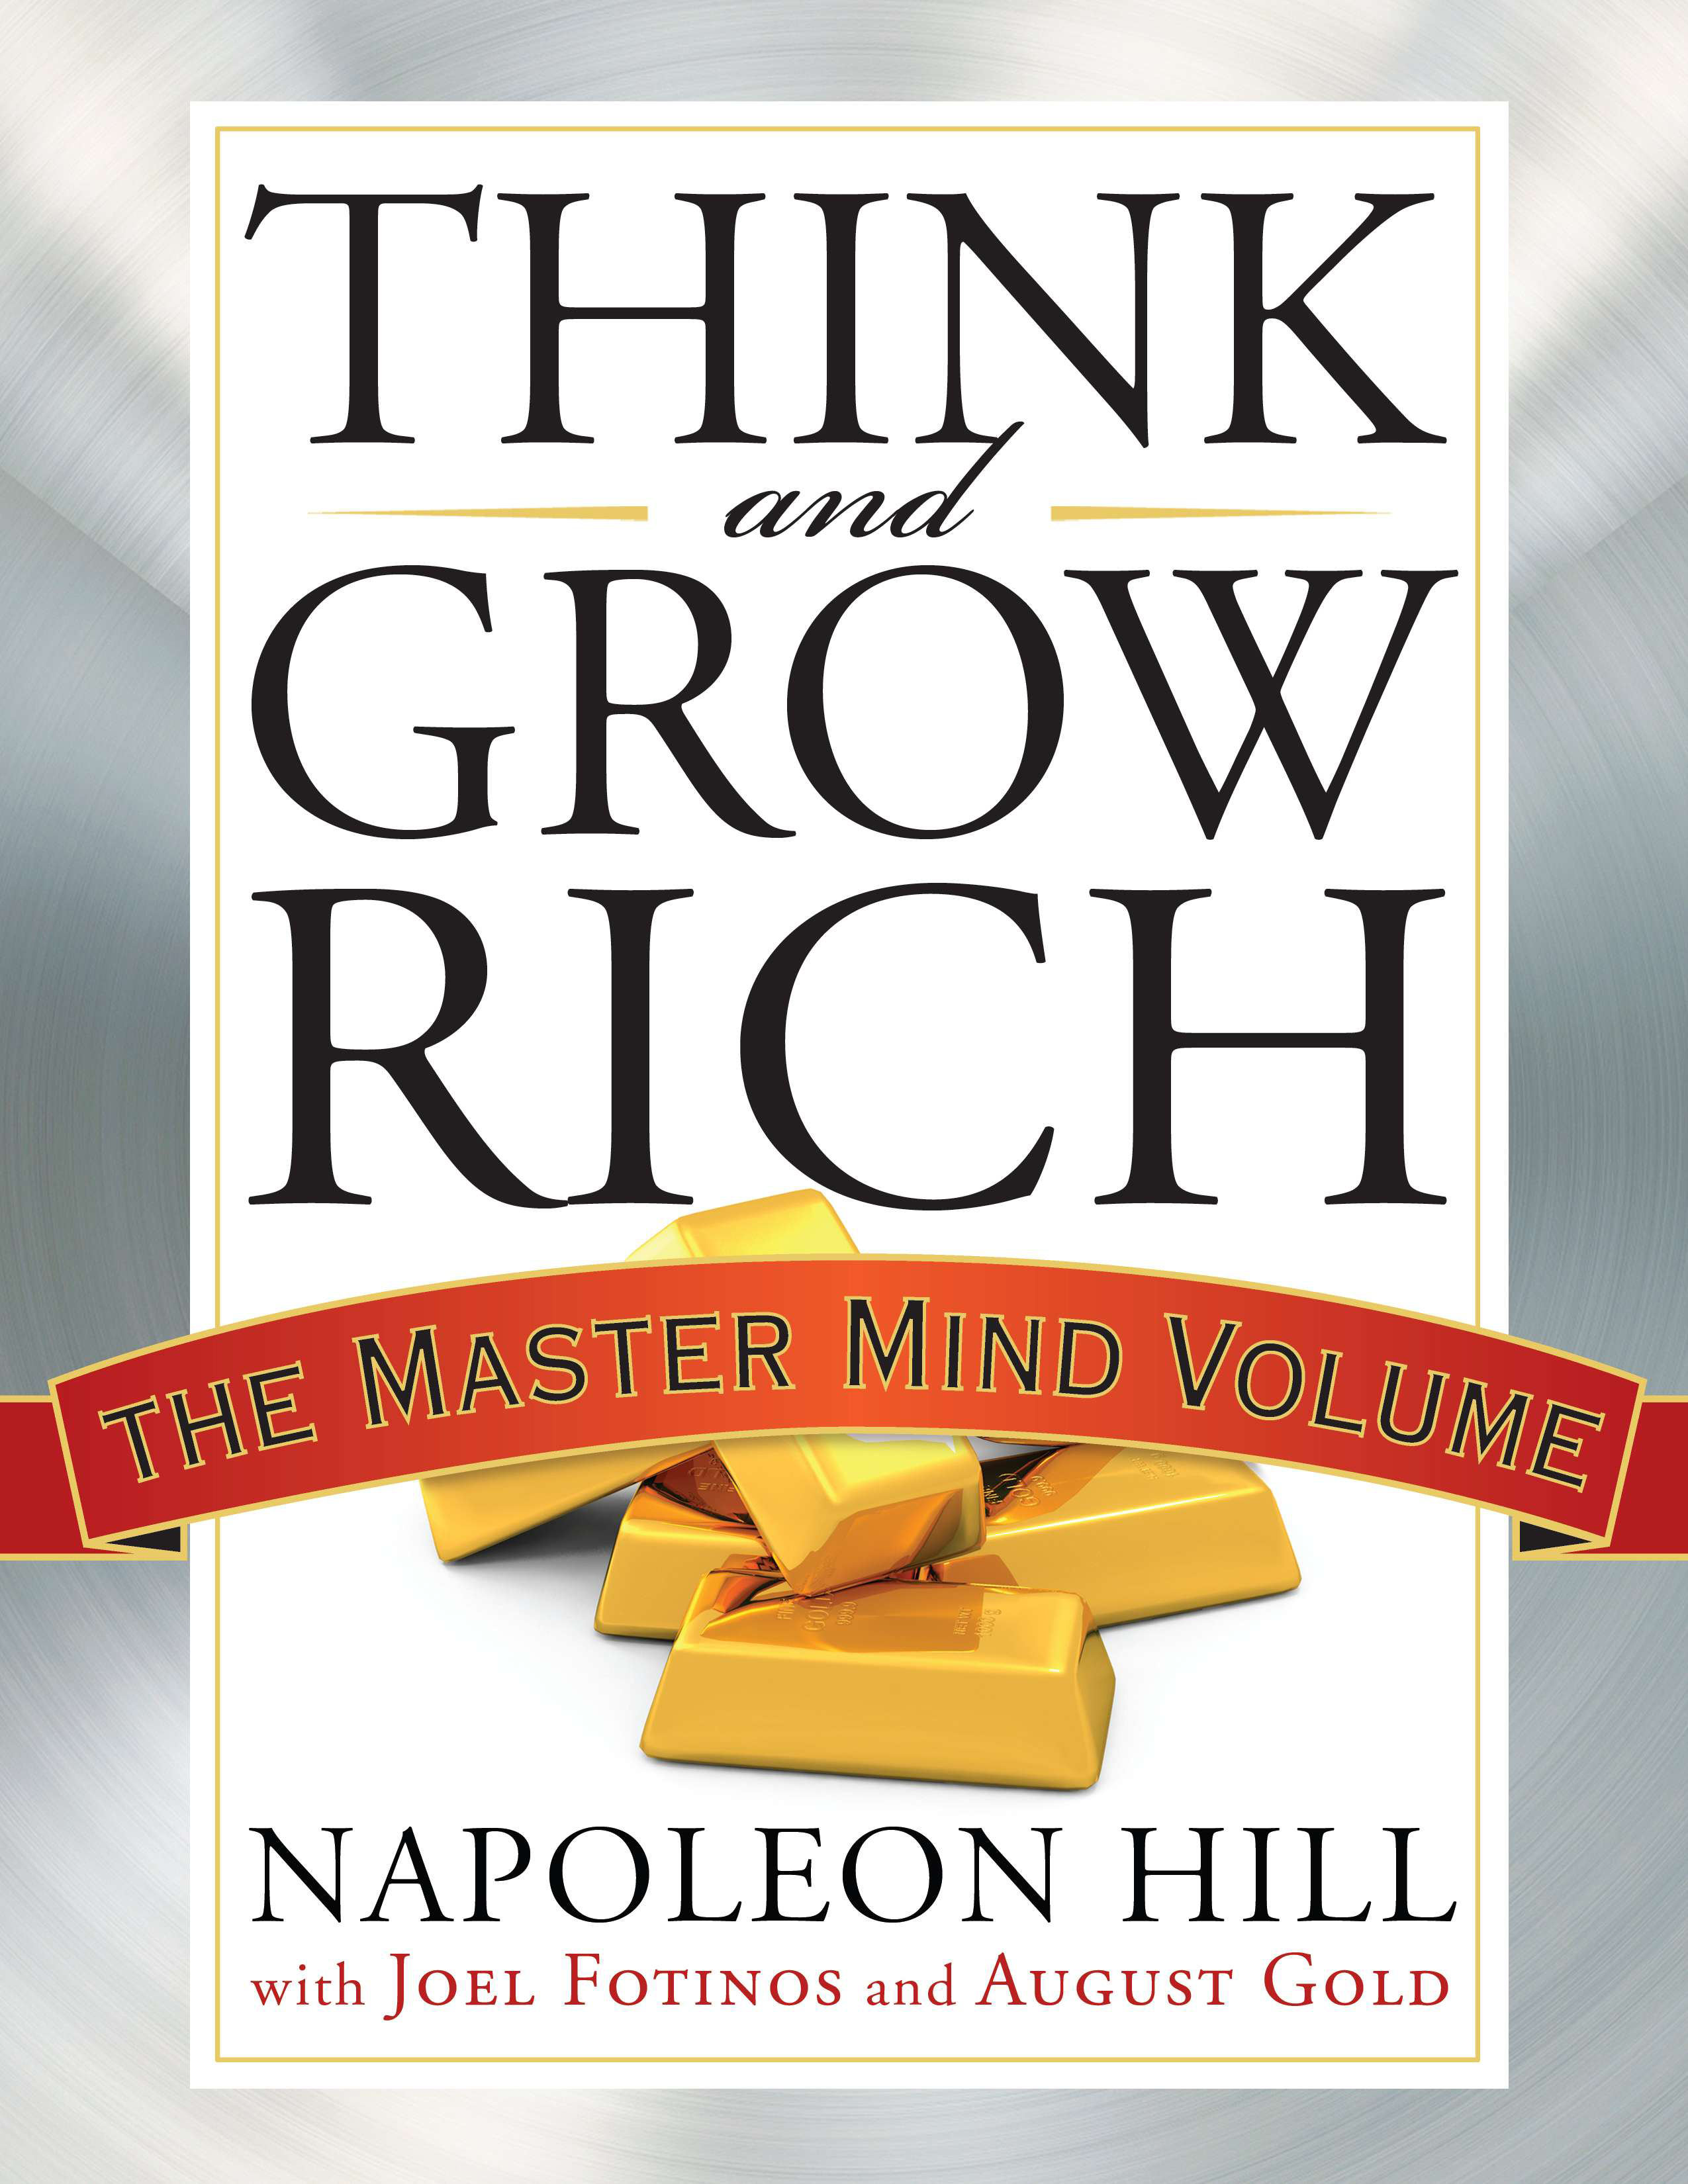 Think and Grow Rich The Master Mind Volume  by Napoleon Hill, Joel Fotinos, August Gold